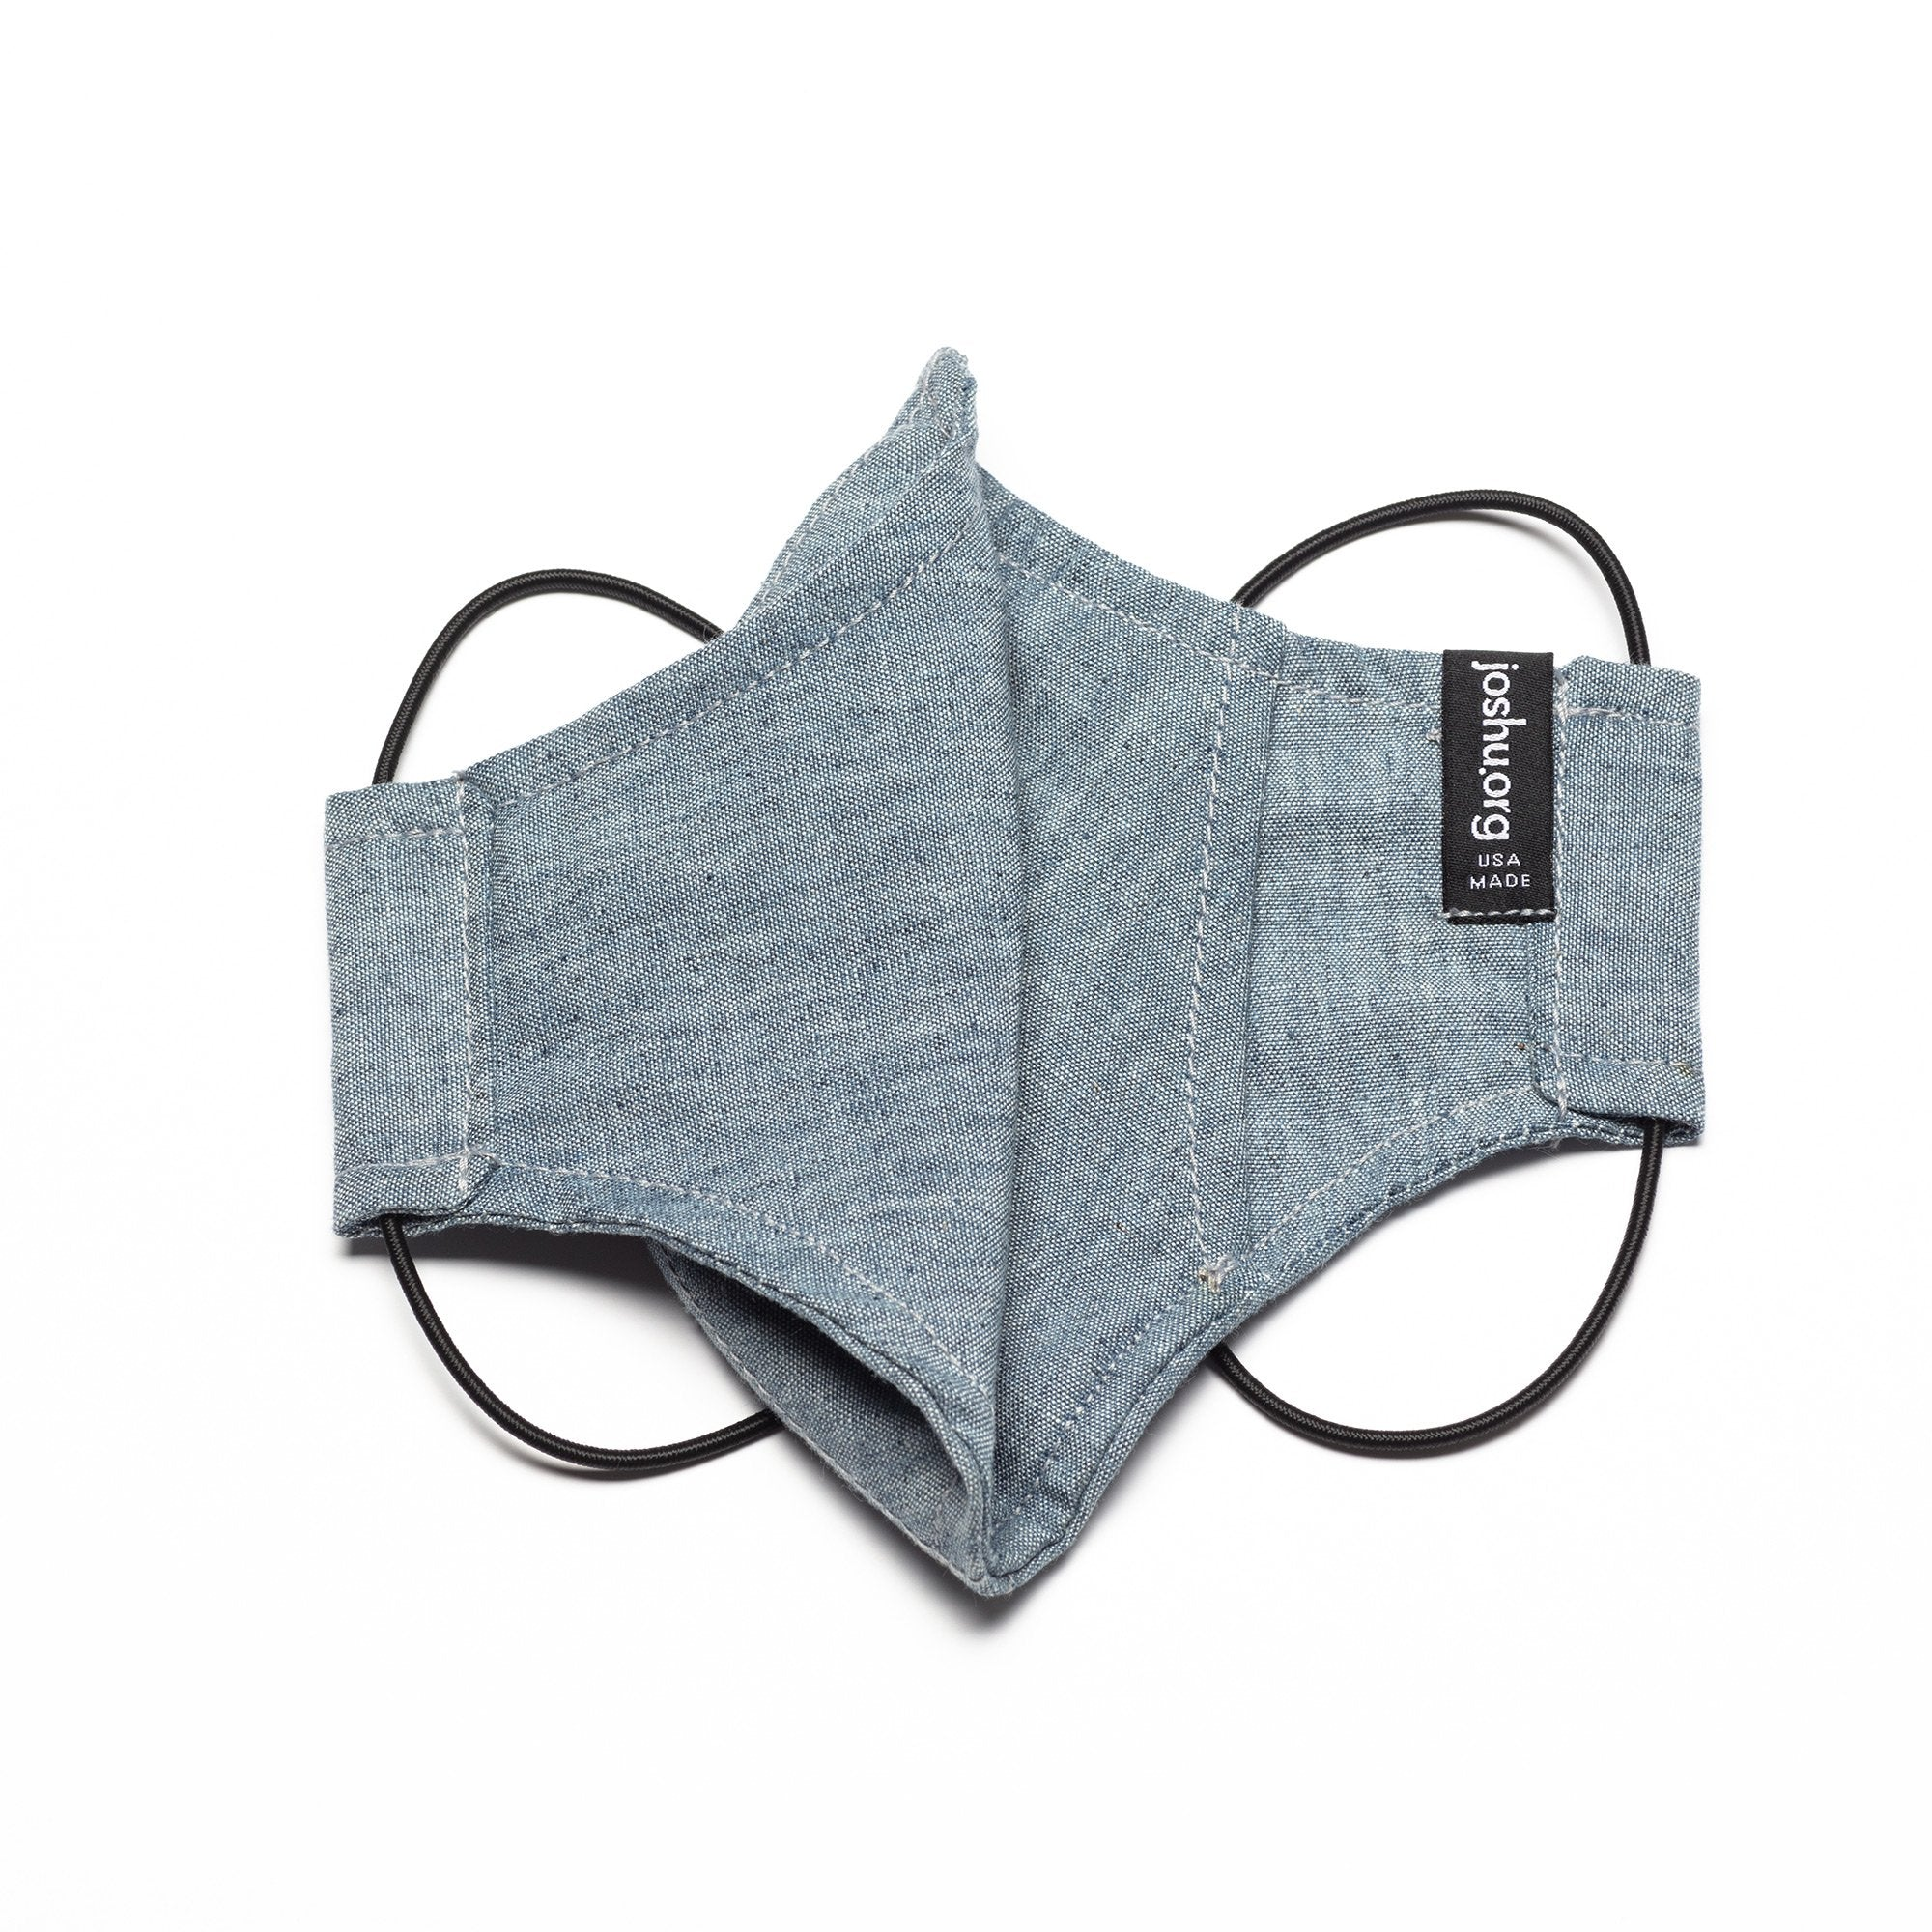 The Curve Mask - Recycled Chambray w/Shock Cord